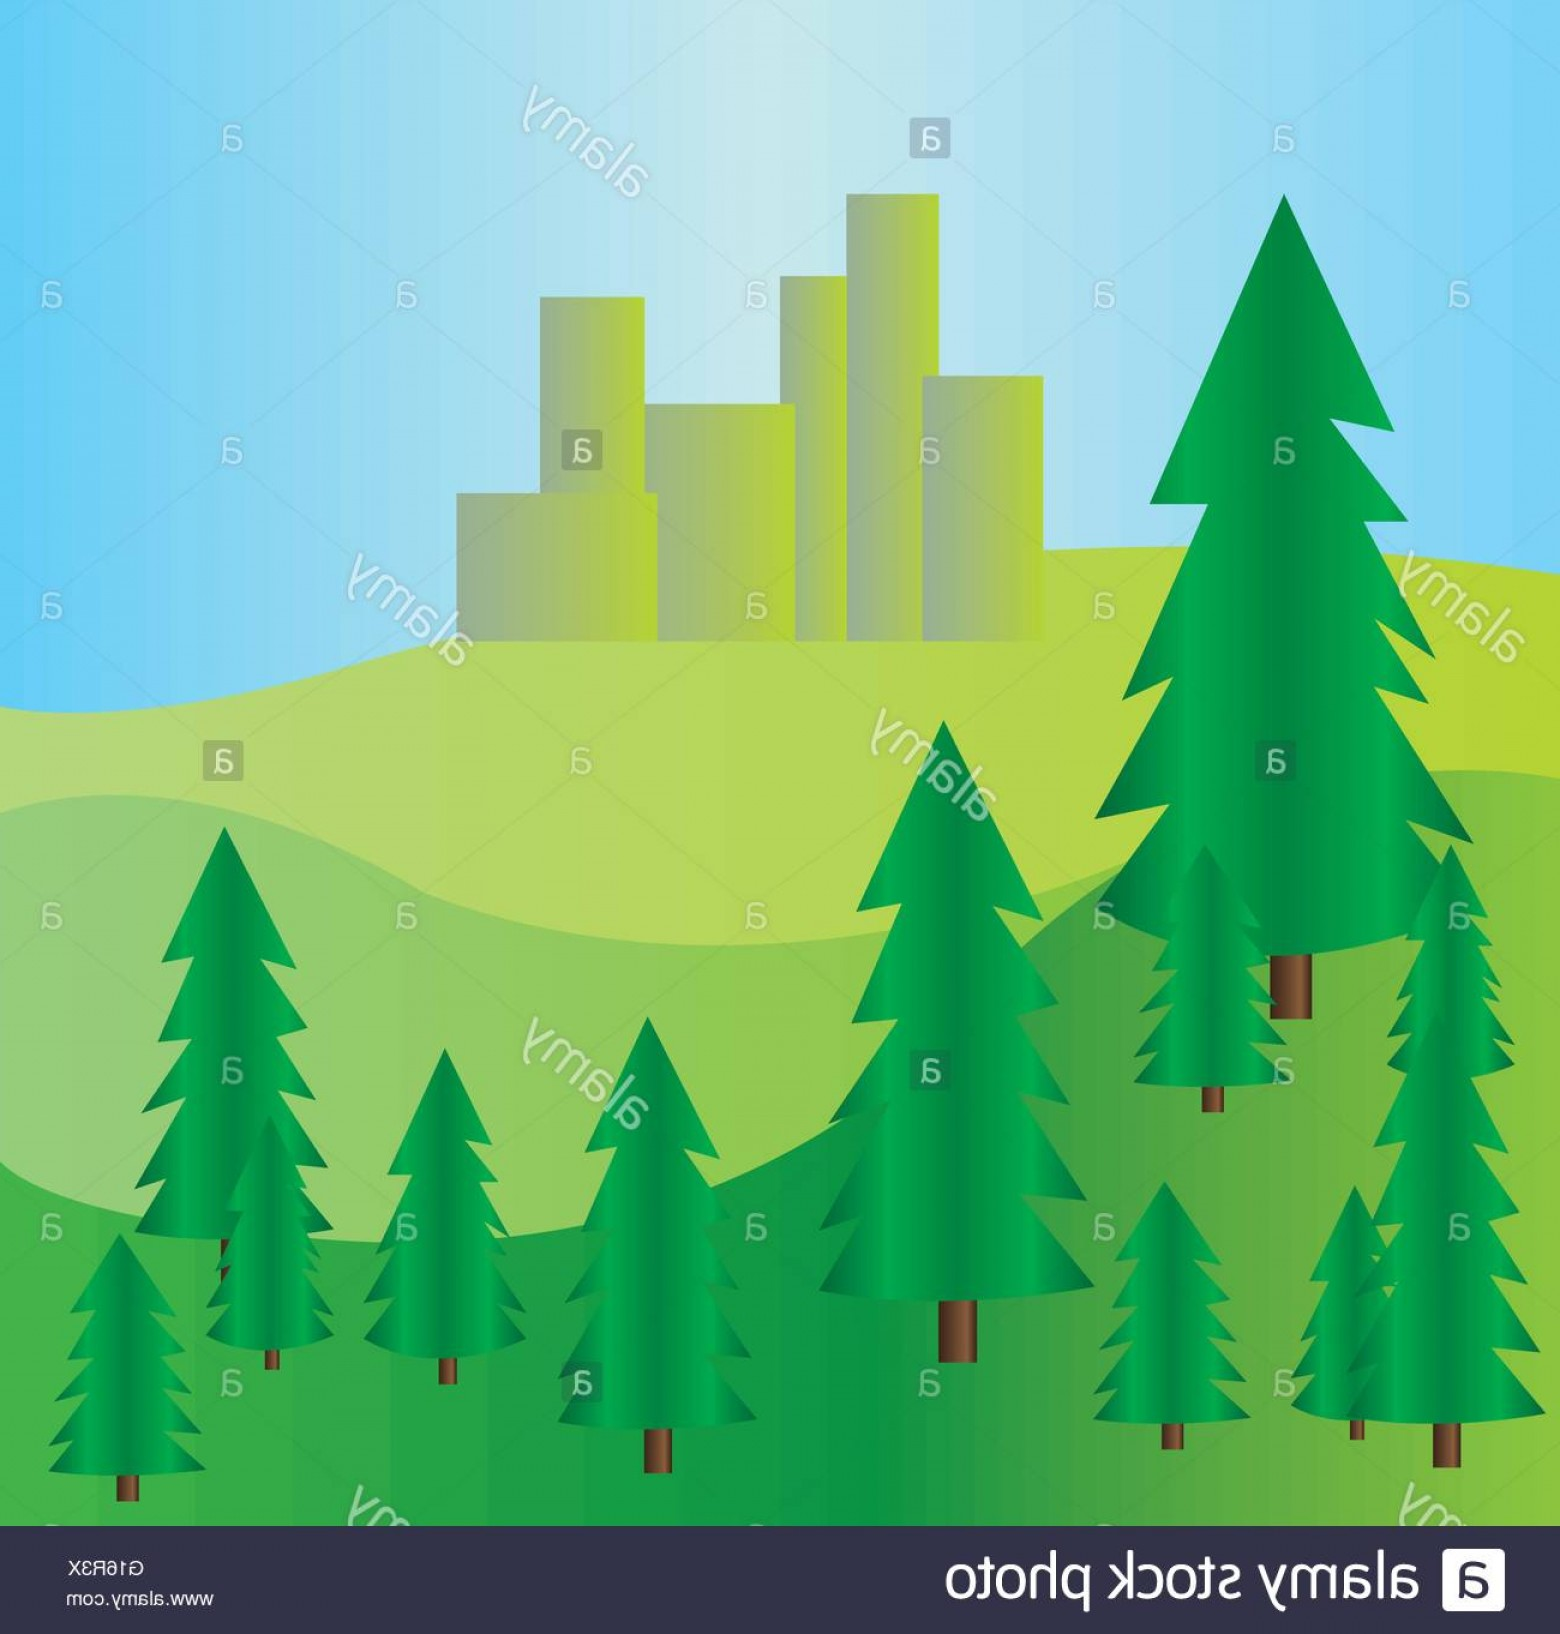 Vector Art Mountains Trees Colorado: Stock Photo Pine Trees At Mountains Landscape With Blue Skies Digital Background